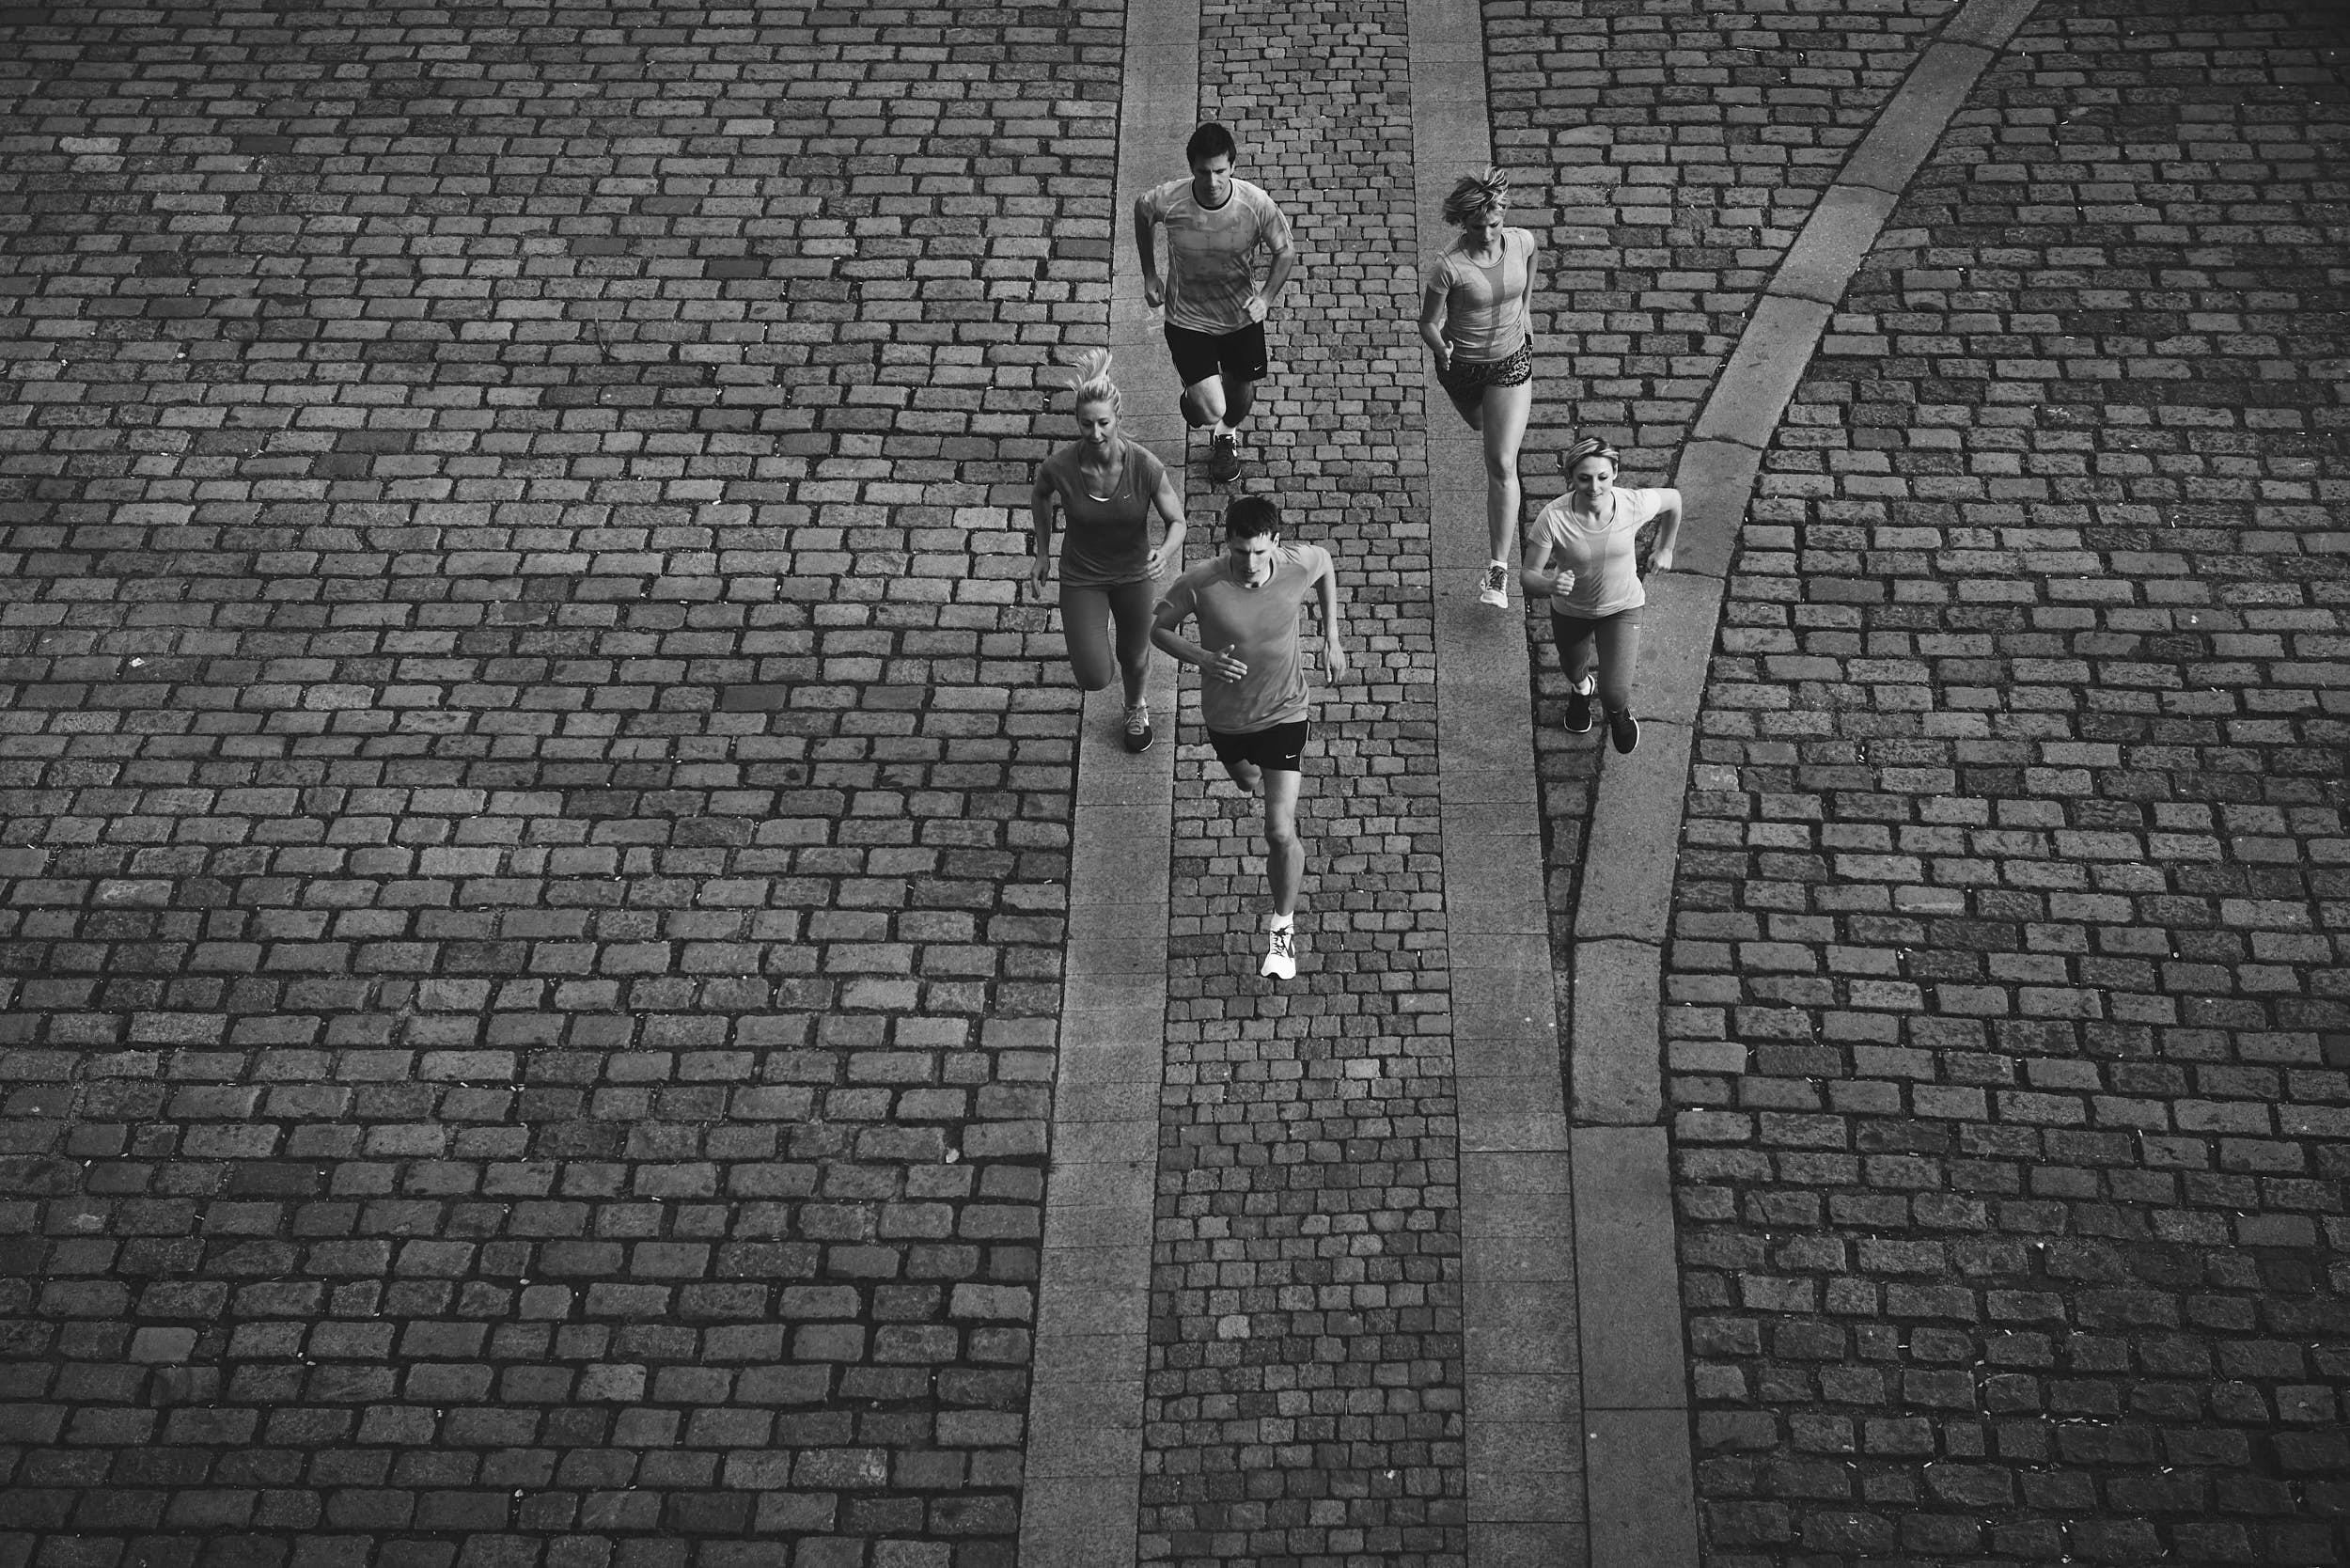 Black and white sports photography: group of runners on pavement photographed from elevated perspective.